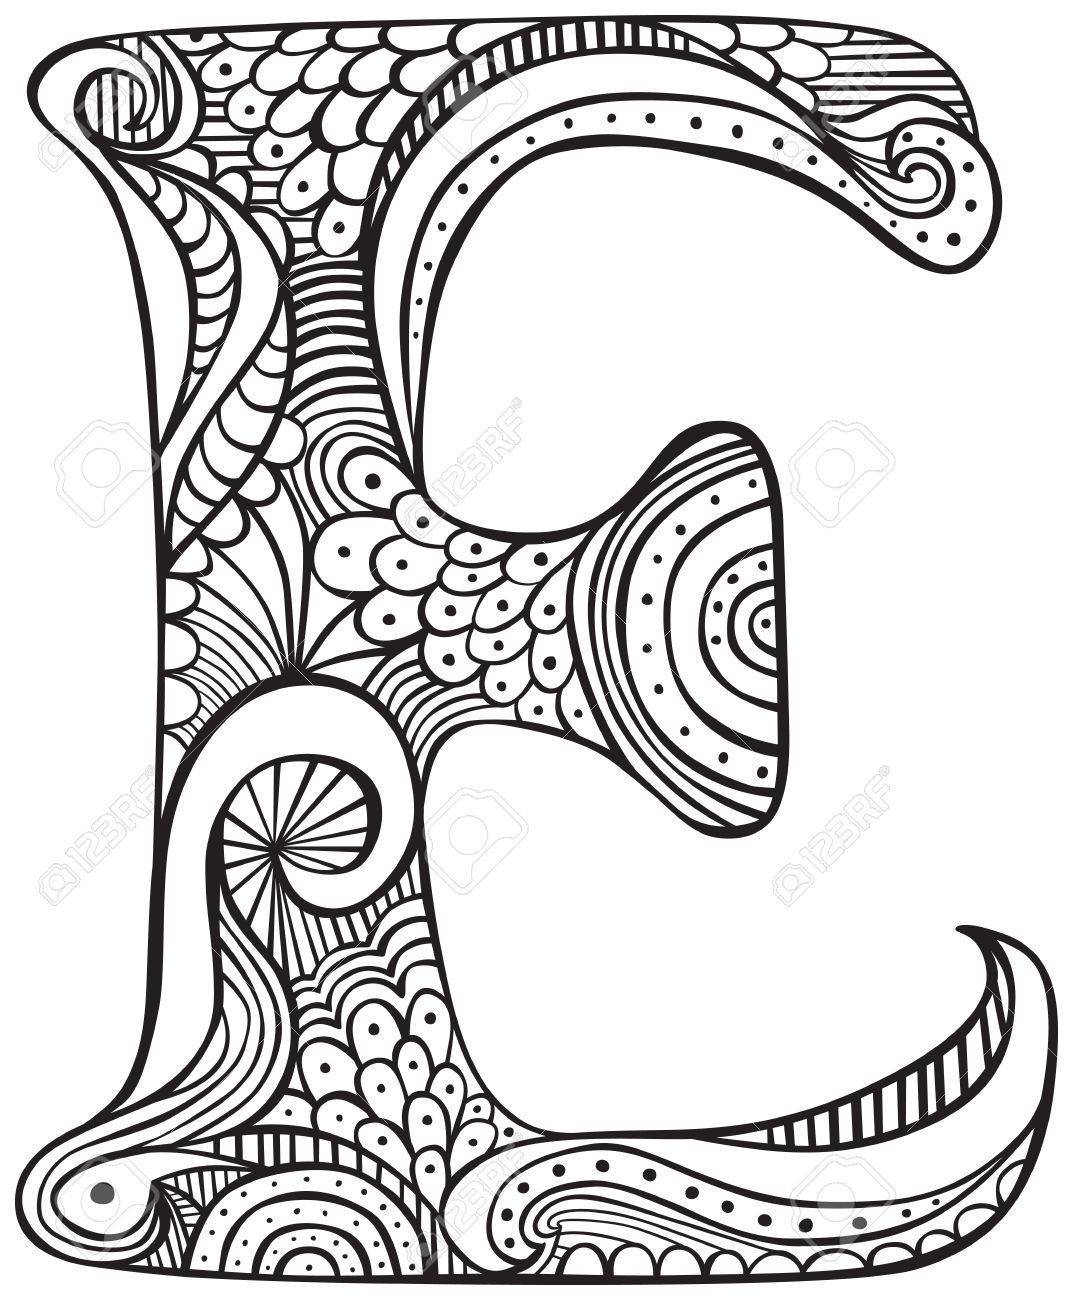 Related Image Hand Lettering Drawing Colouring Sheets For Adults Coloring Letters Free Disney Coloring Pages